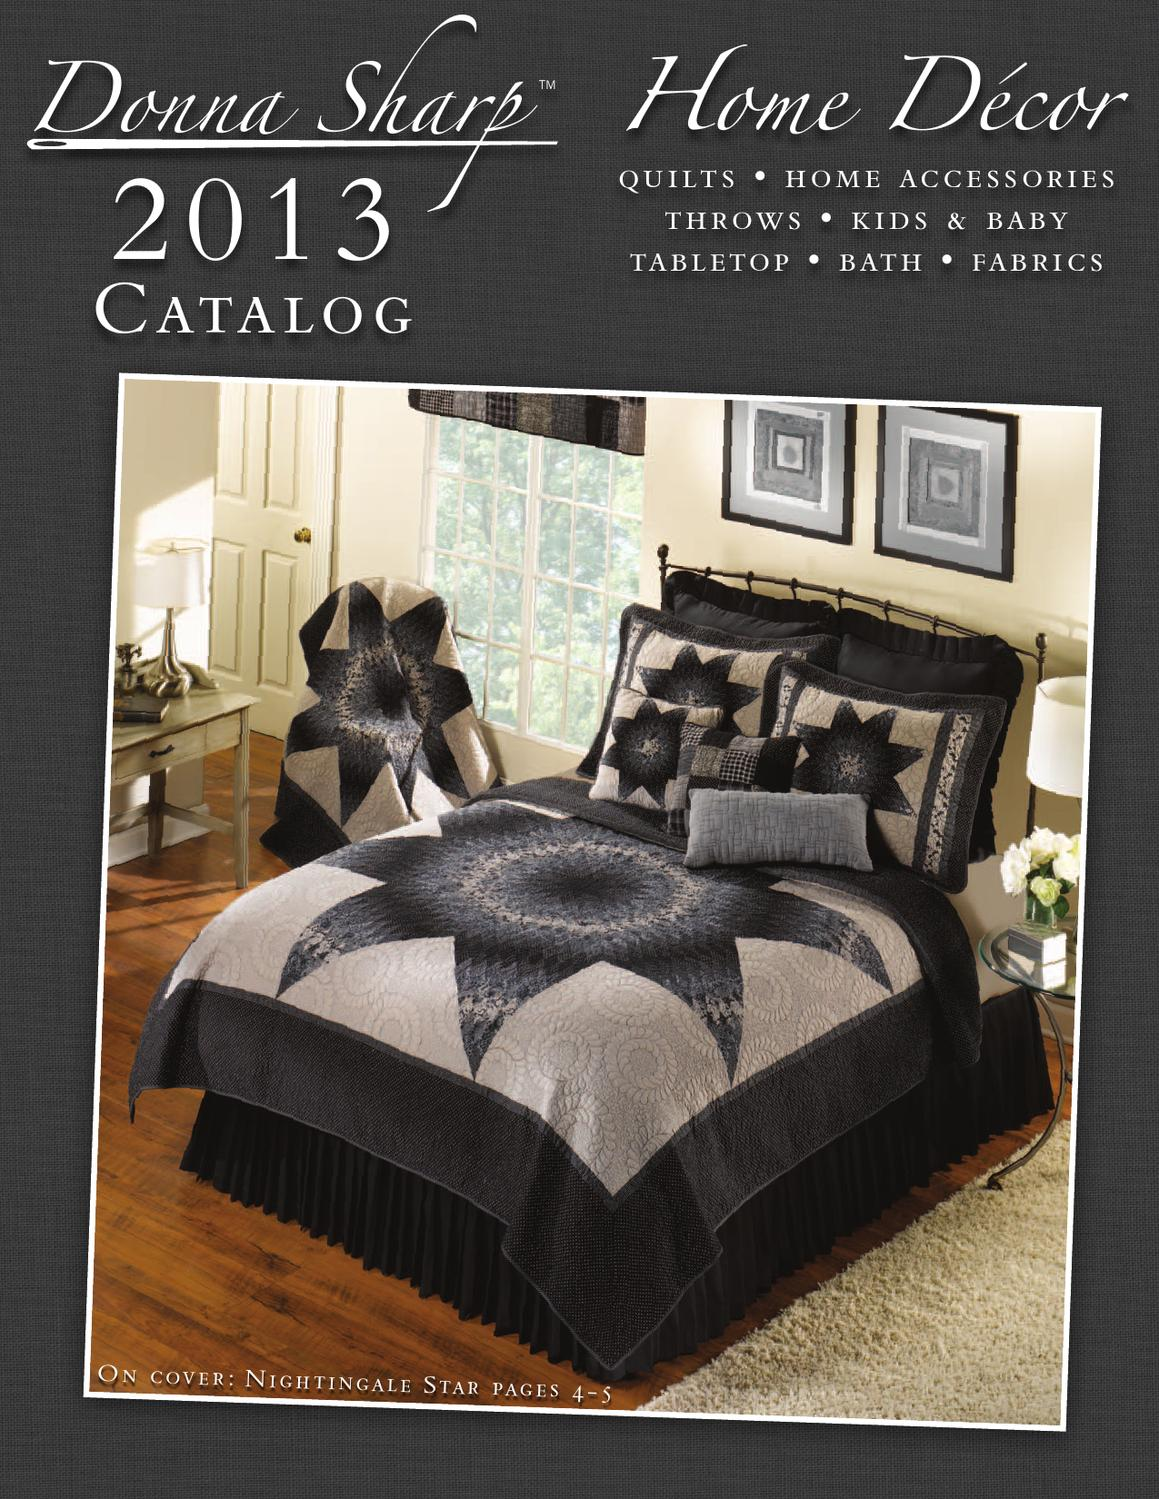 2013 Donna Sharp Home Décor Catalog